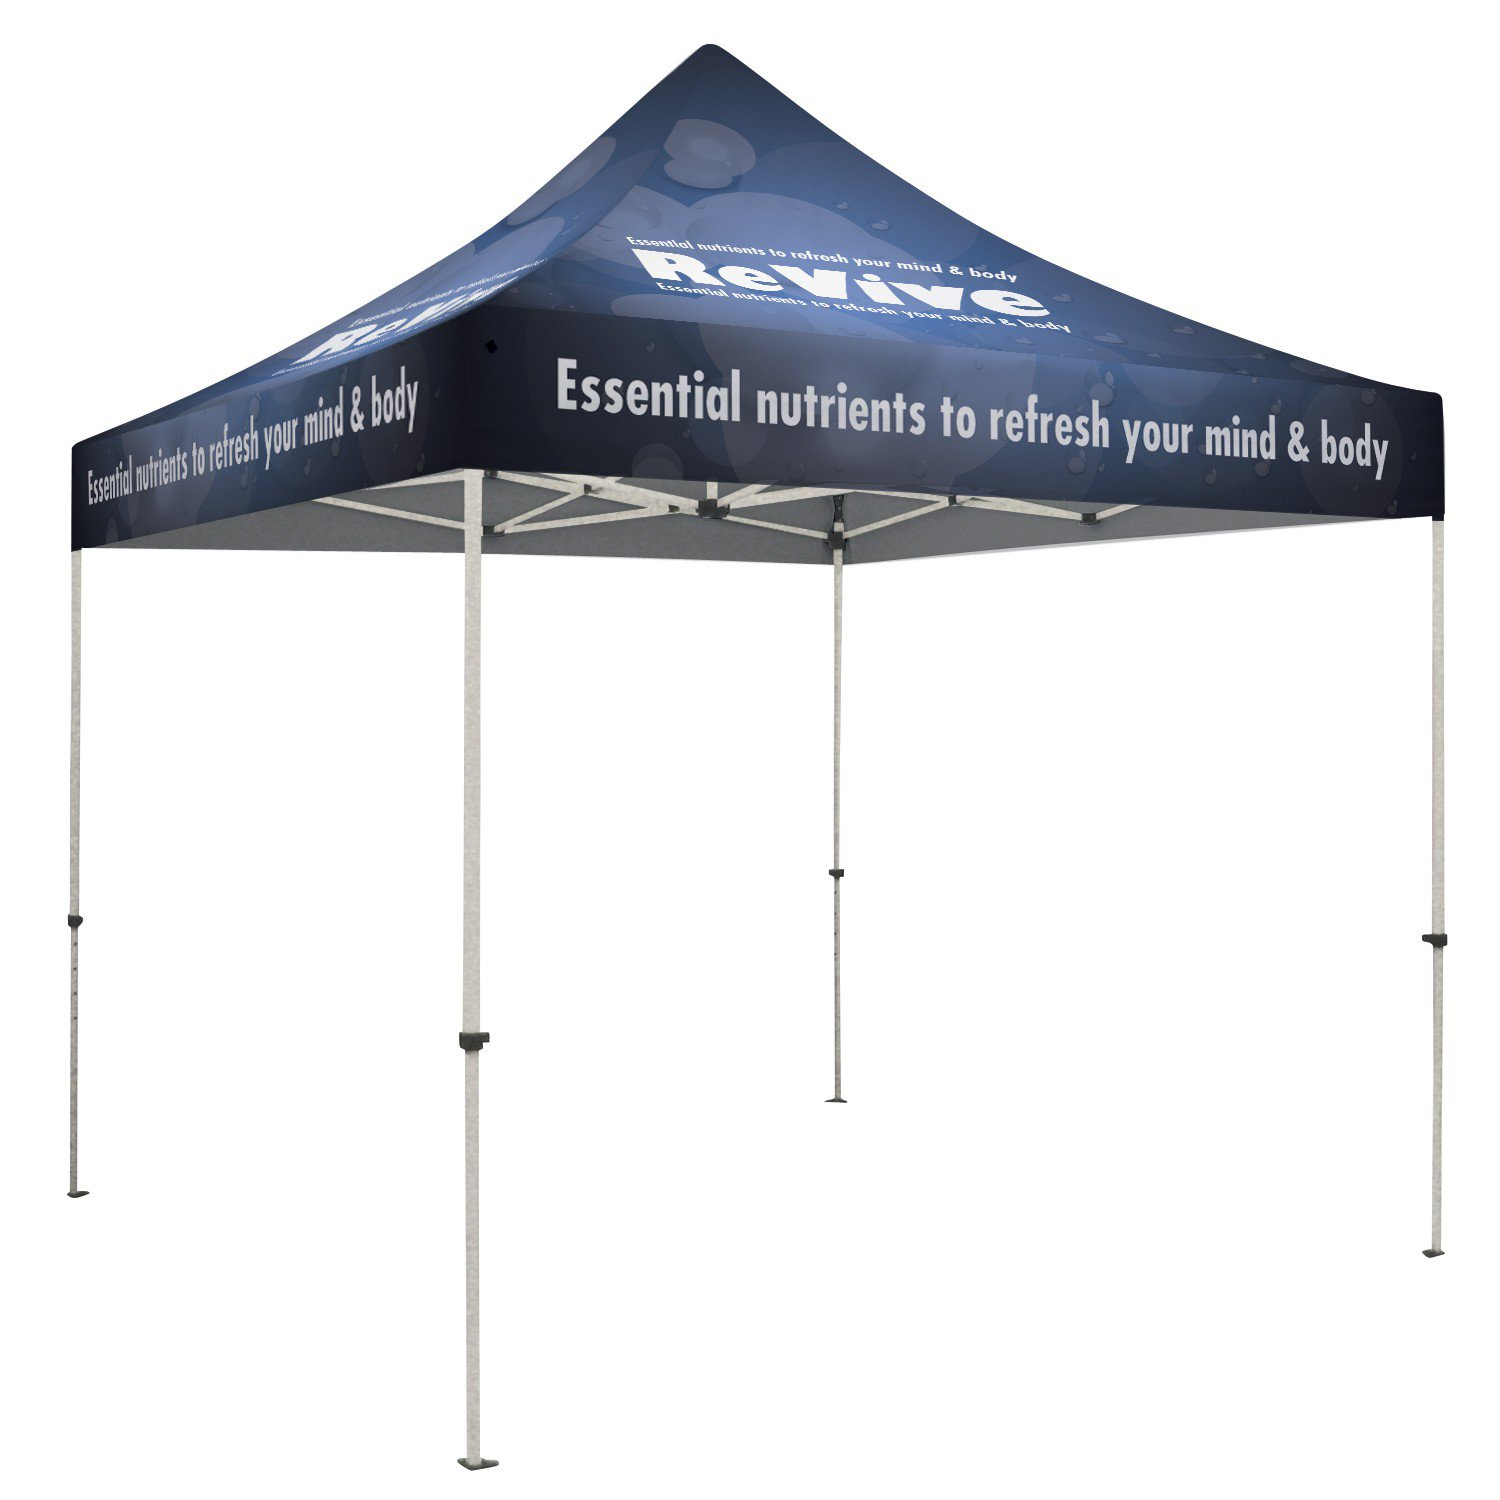 10ft x 10ft Canopy (Imprint Entire Canopy in Full-Color)